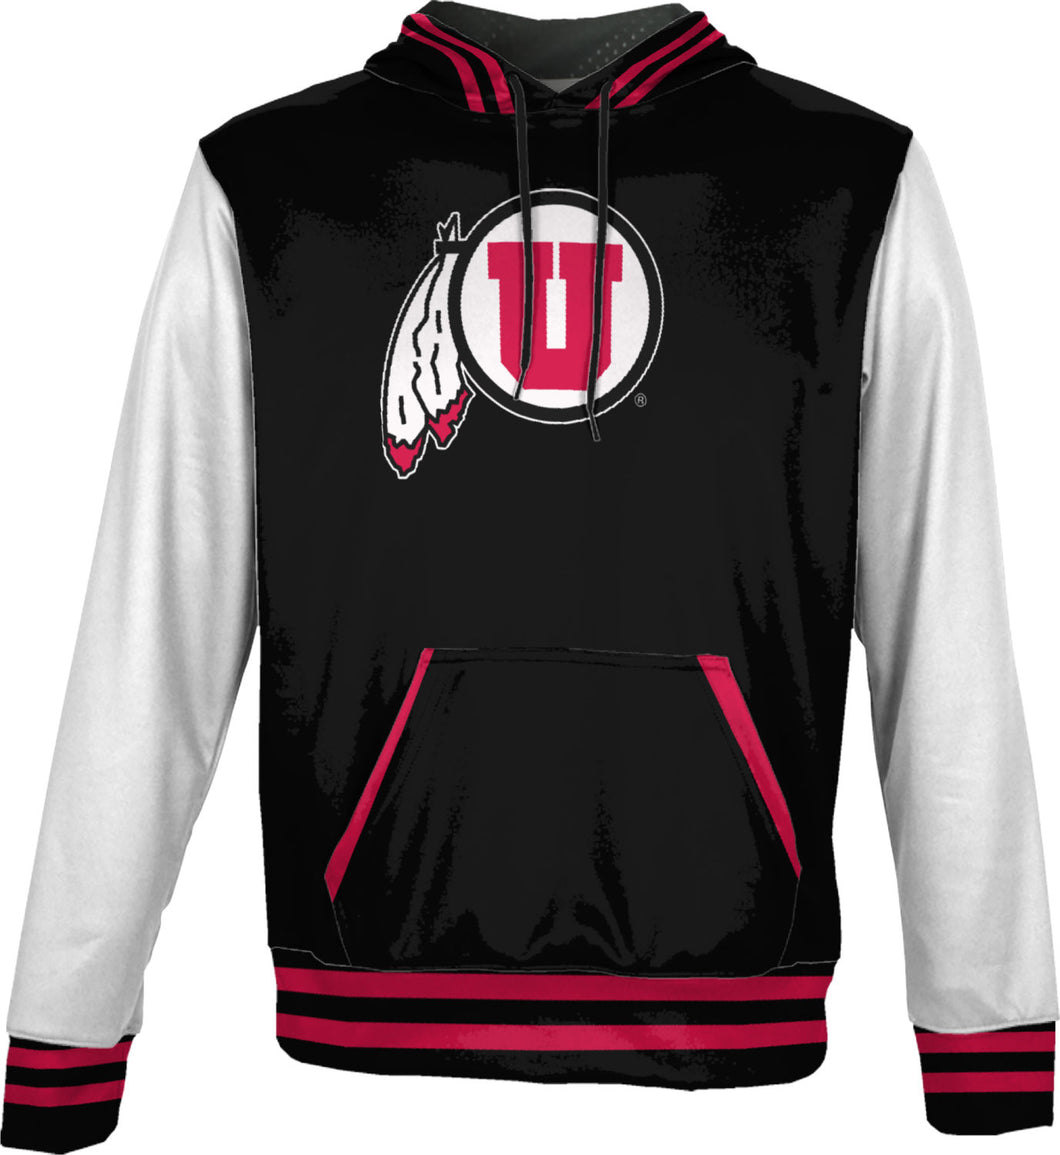 University of Utah Men's Pullover Hoodie - Letterman